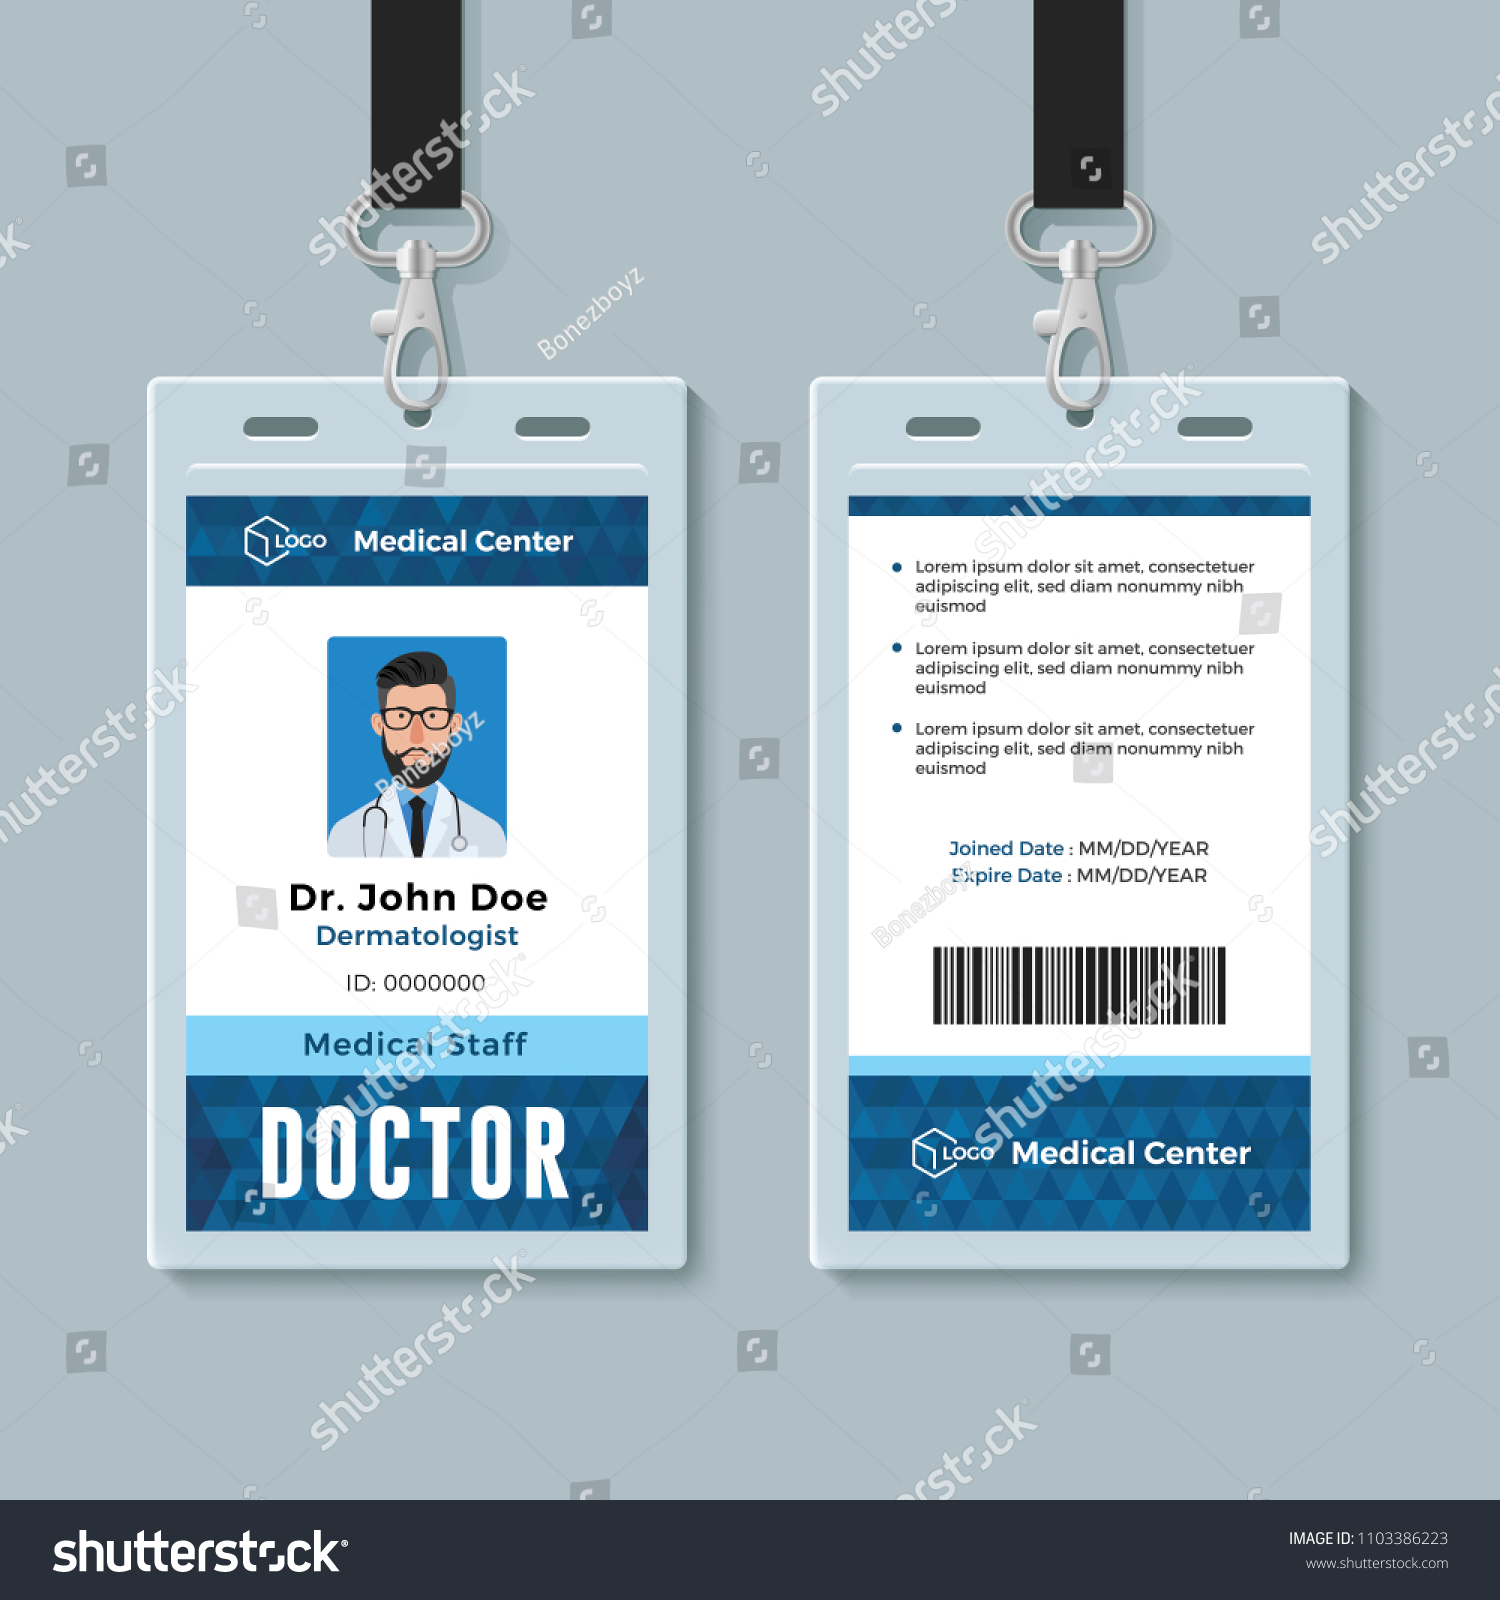 doctor id card medical identity badge stock vector royalty free